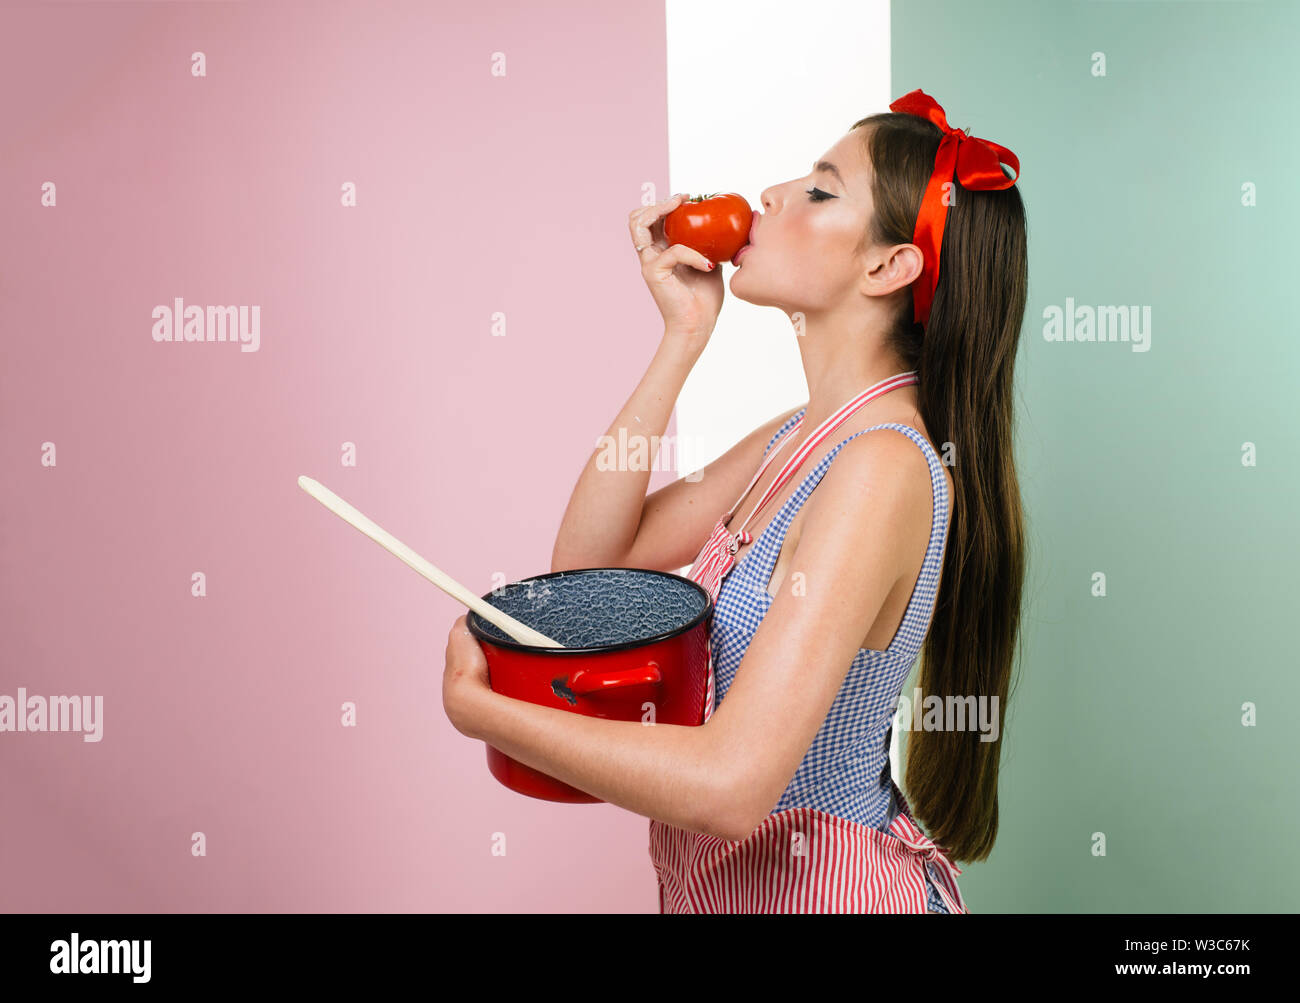 perfect housewife. pretty girl in vintage style. pinup girl with fashion hair. pin up woman with trendy makeup. retro woman cooking in kitchen. Only h - Stock Image